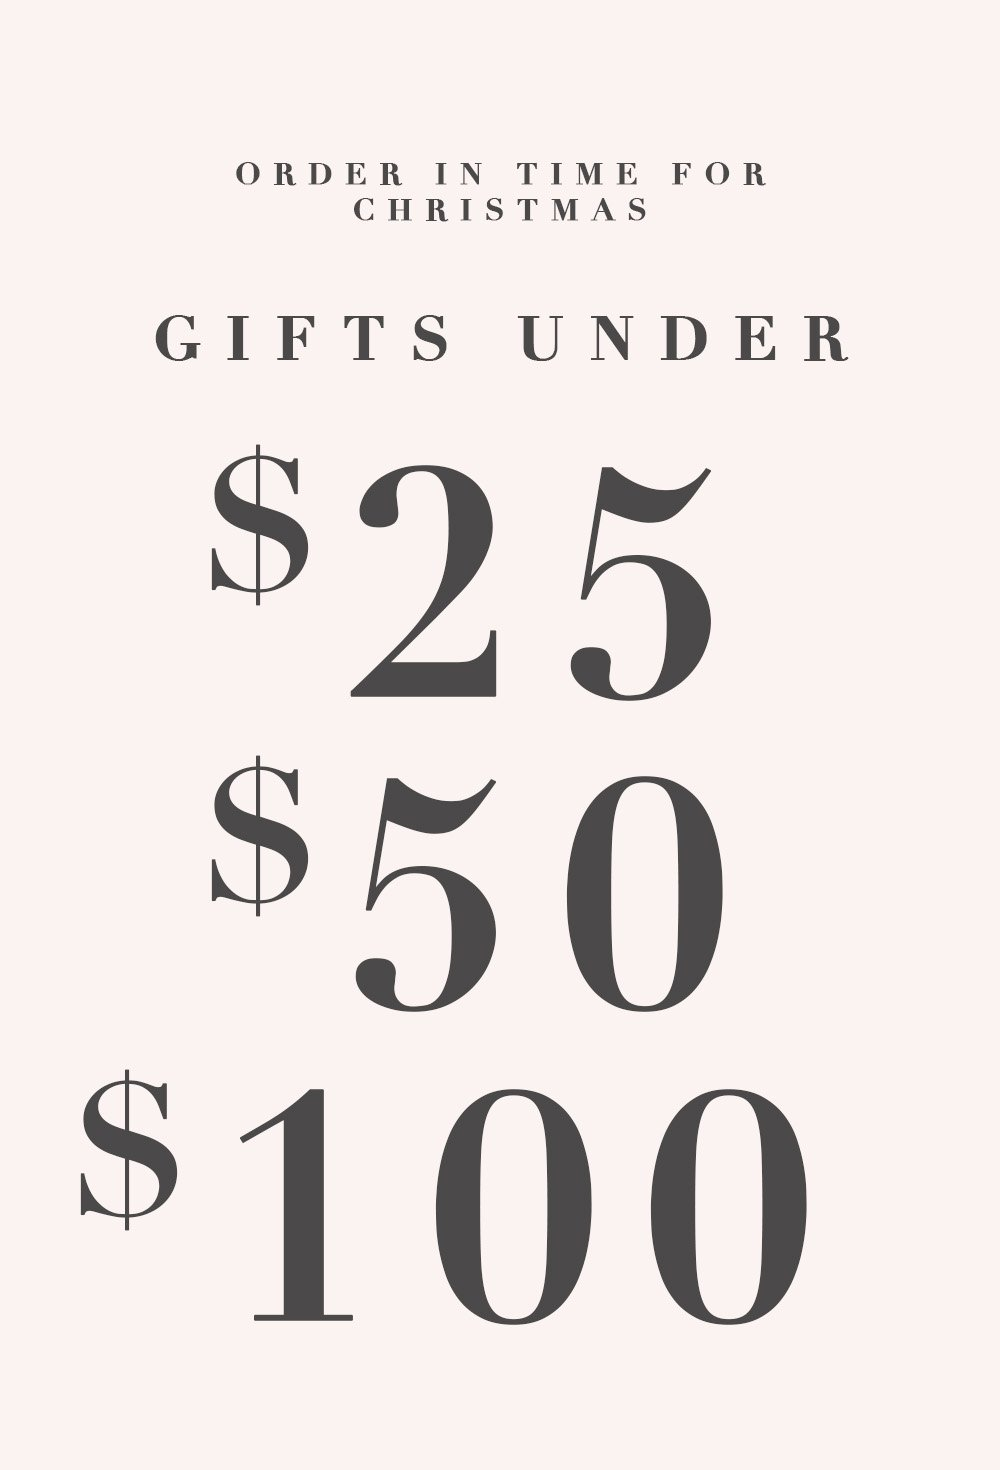 Last Minute Gifts $25, $50, $100 and under!